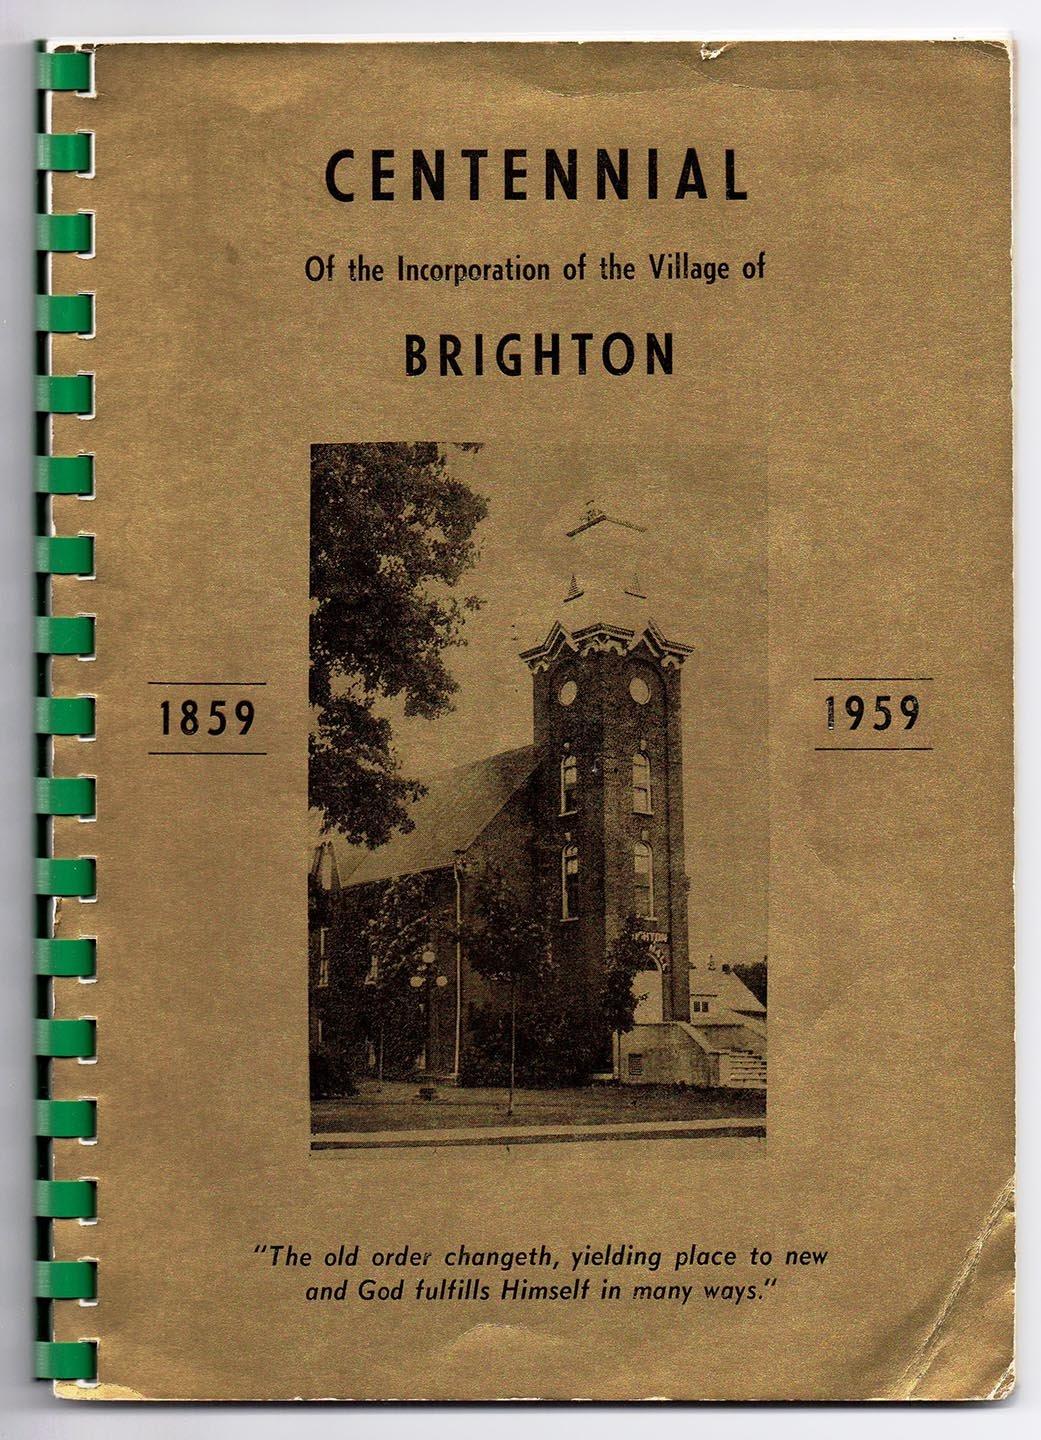 Centennial Of the Incorporation of the Village of Brighton 1859-1959